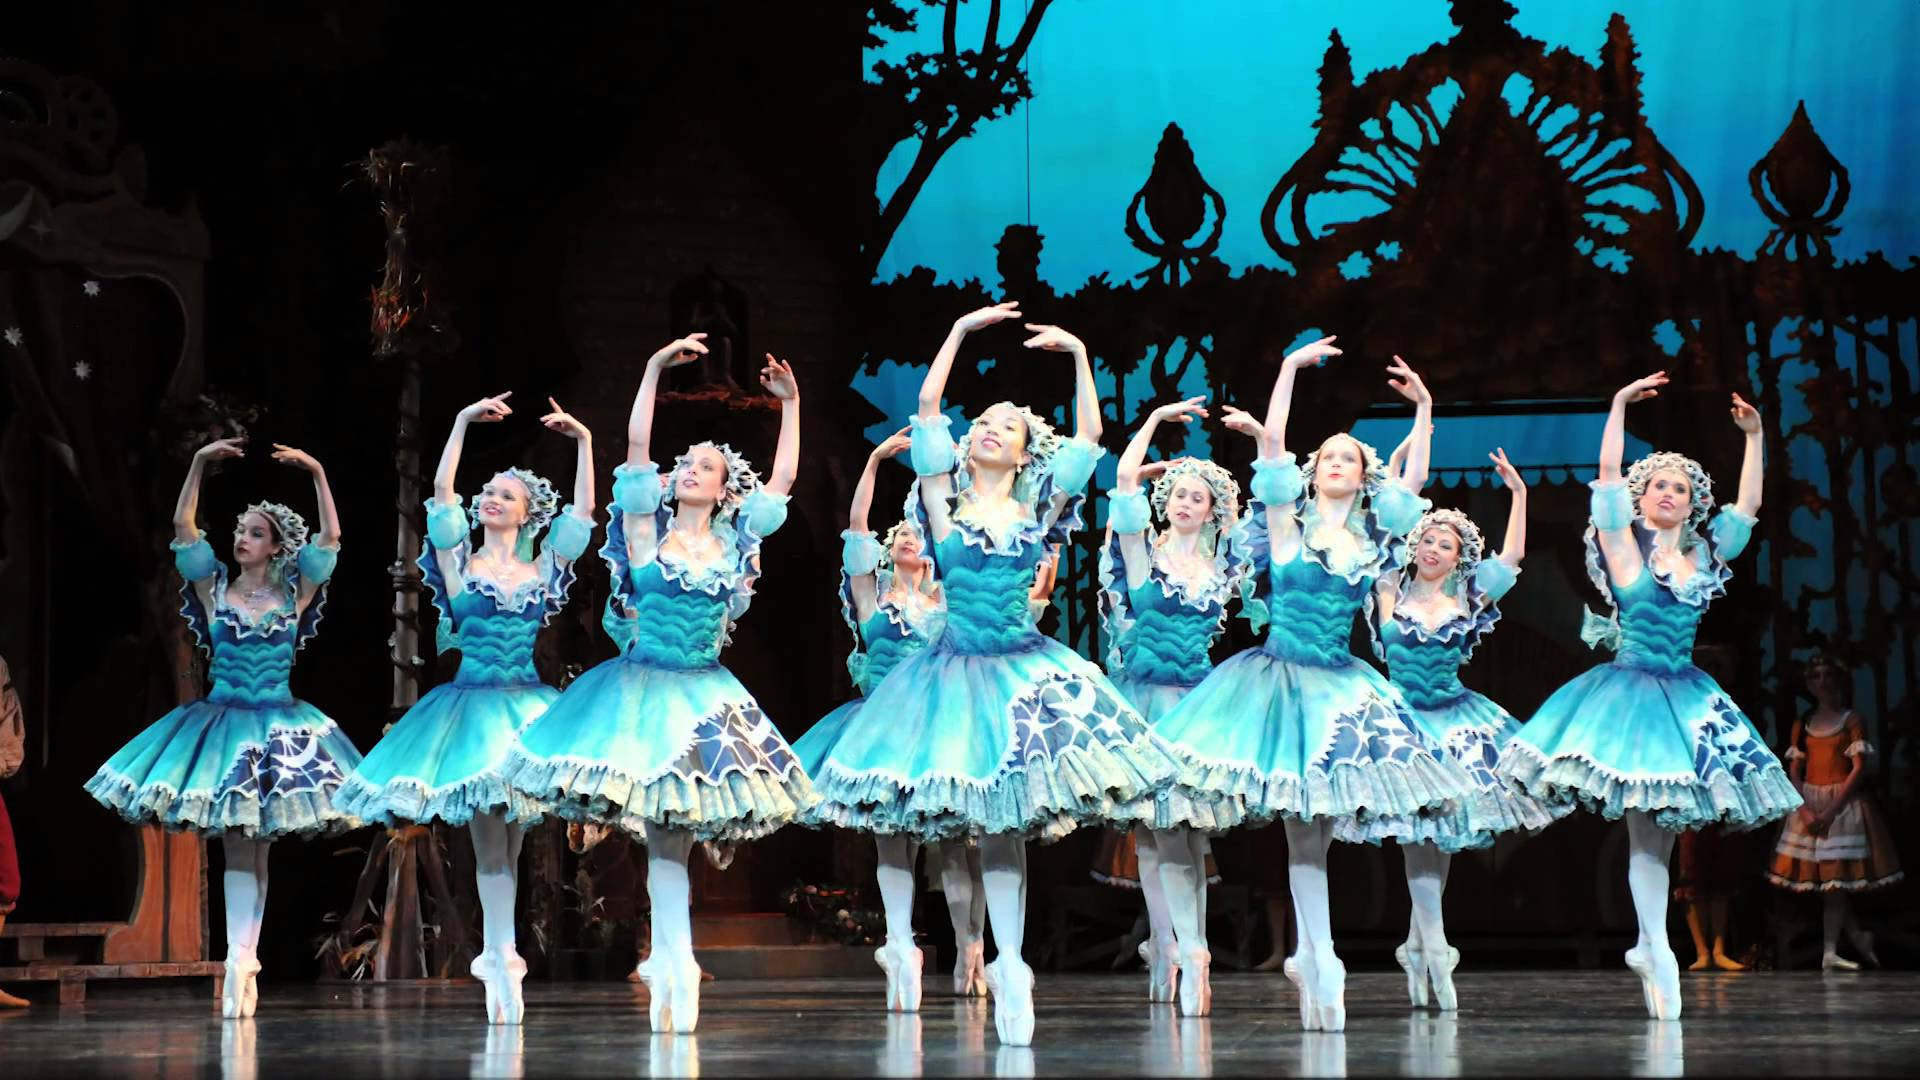 Northeast Atlanta Ballet to perform 'Coppelia' at the Infinite Energy Theater